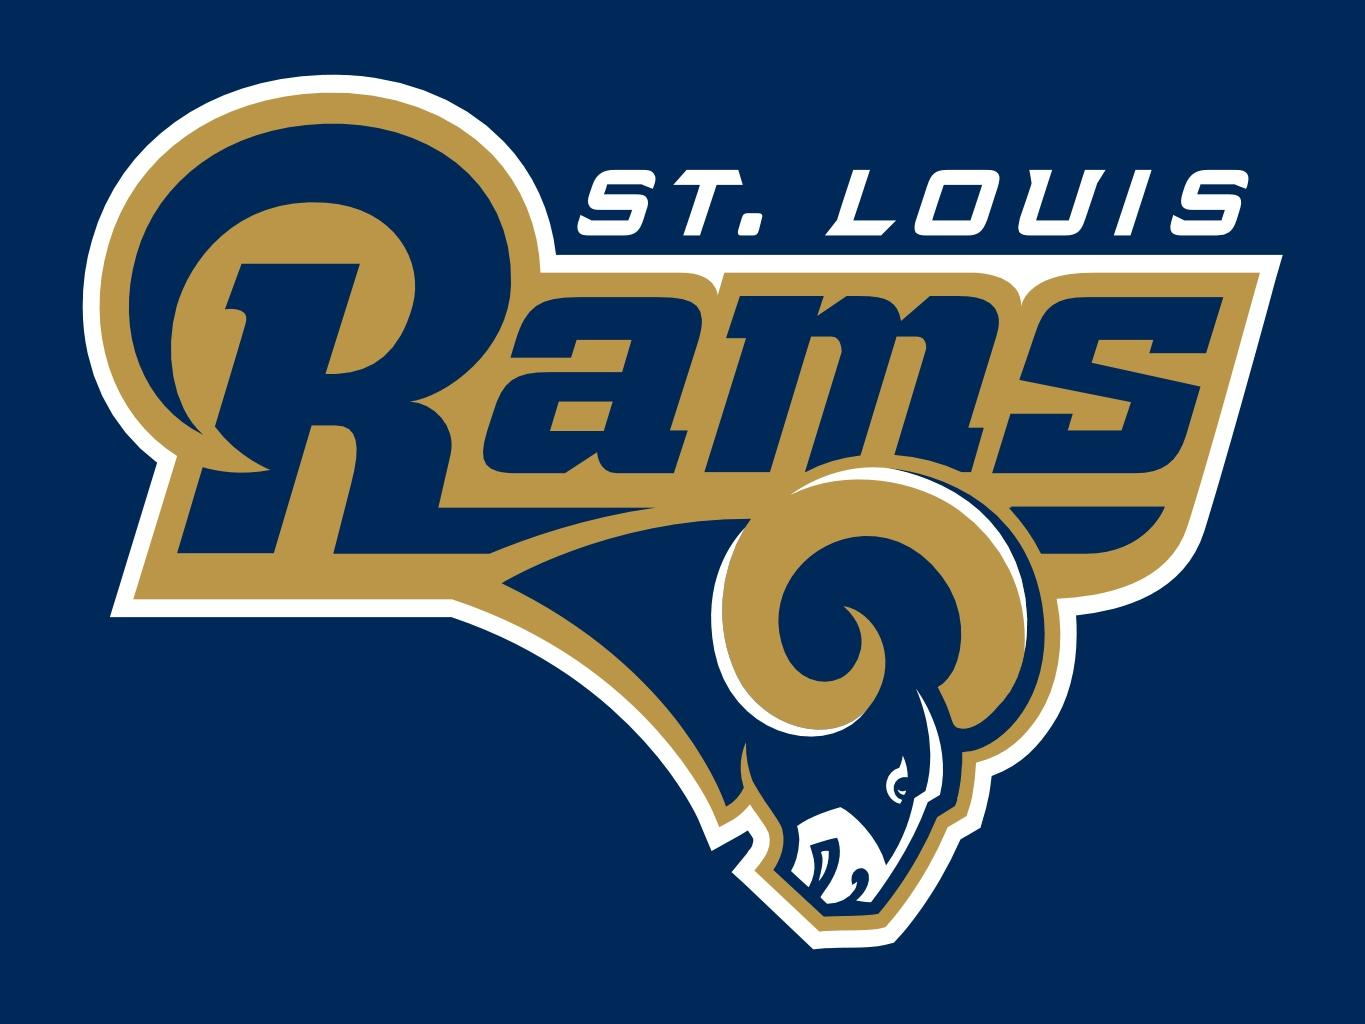 St. Louis Rams to stay in Los Angeles? - Gryphon Gazette